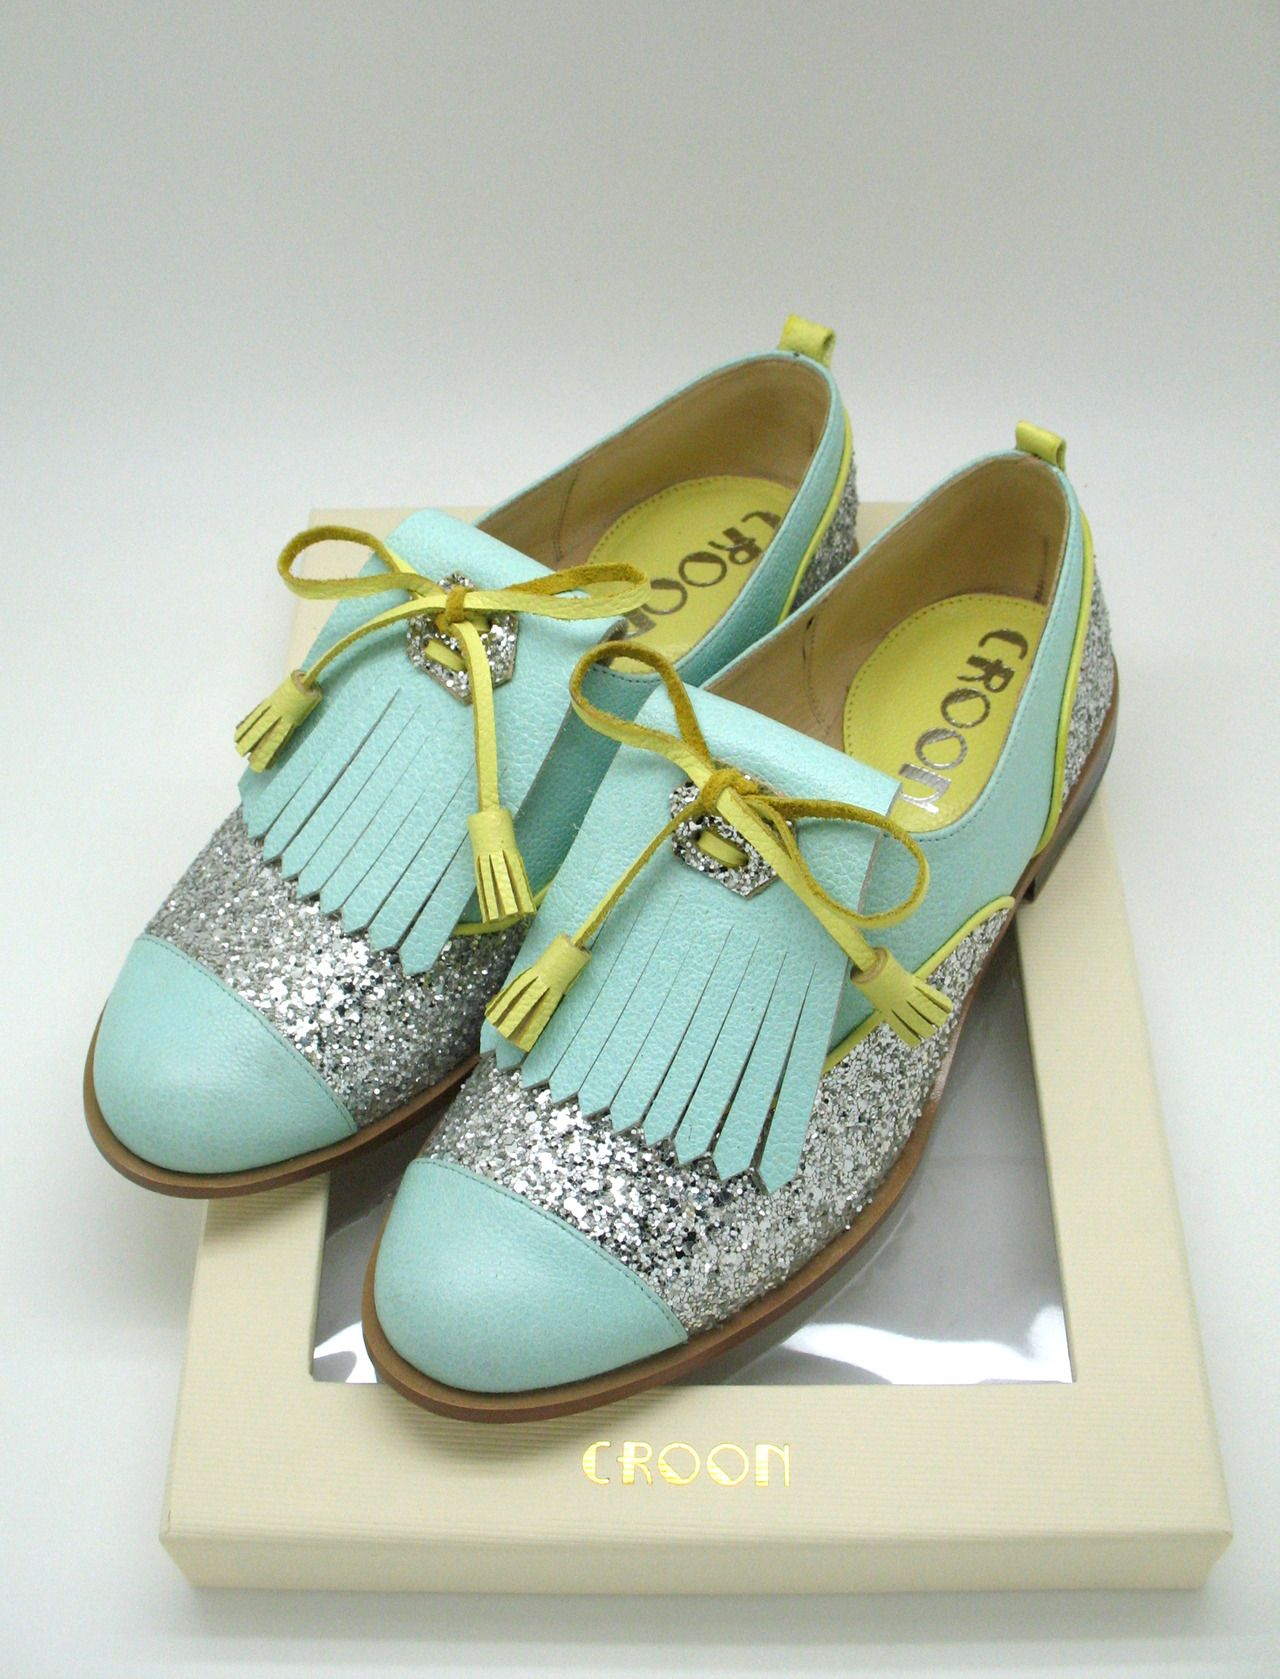 mint dream glitter brogues - Croon